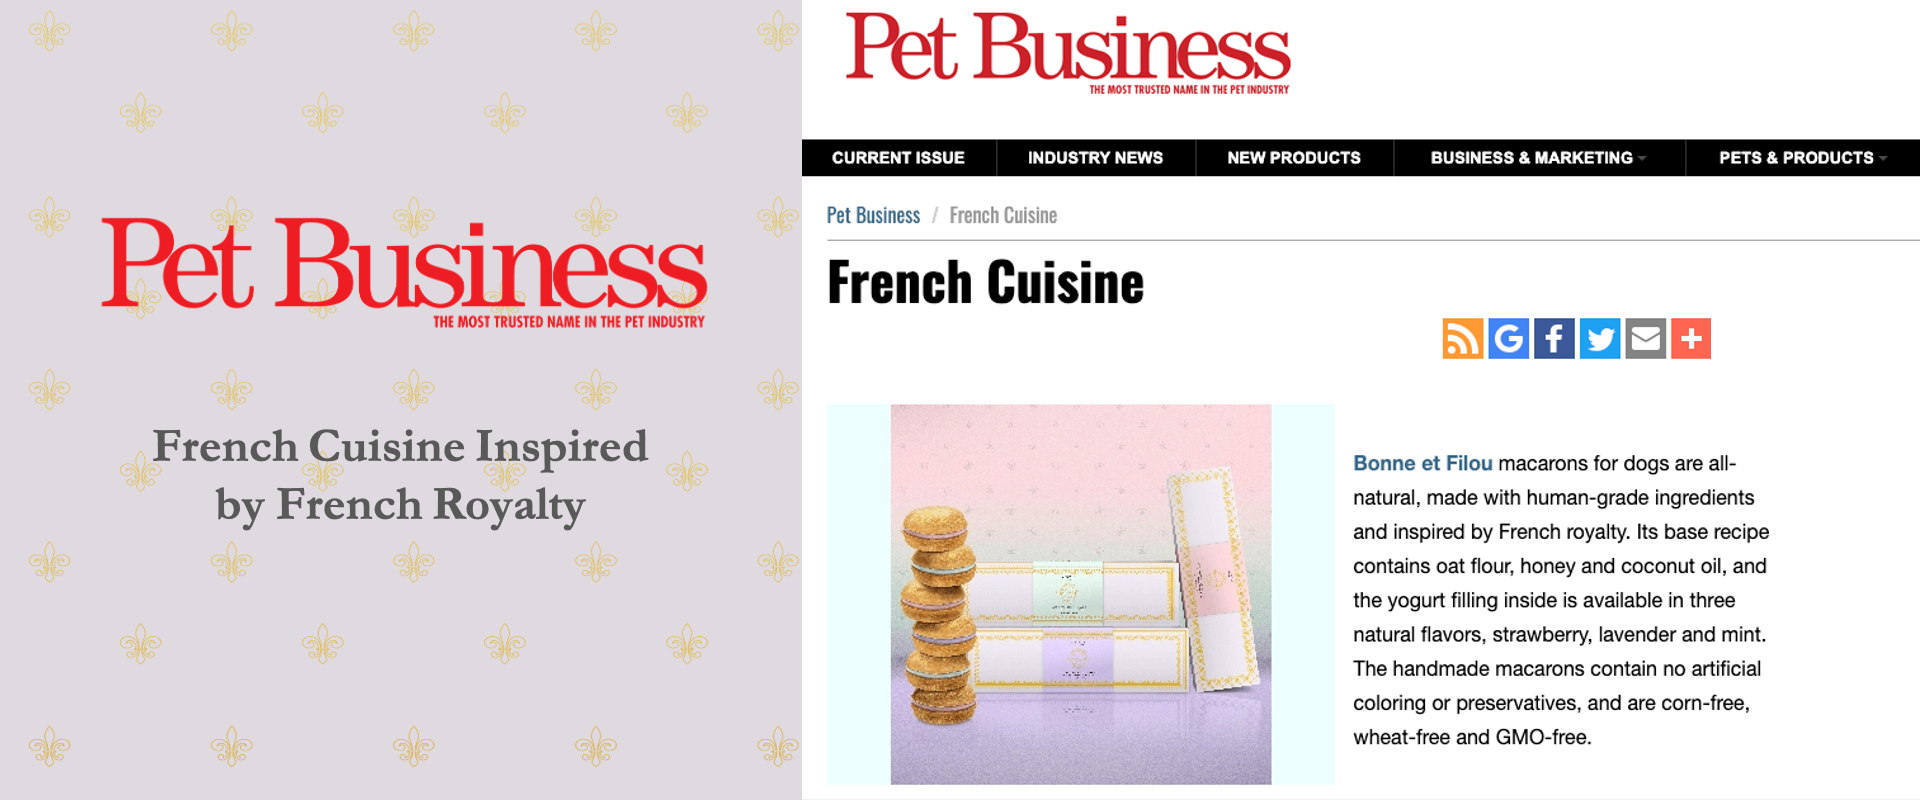 Pet Business - French Cuisine